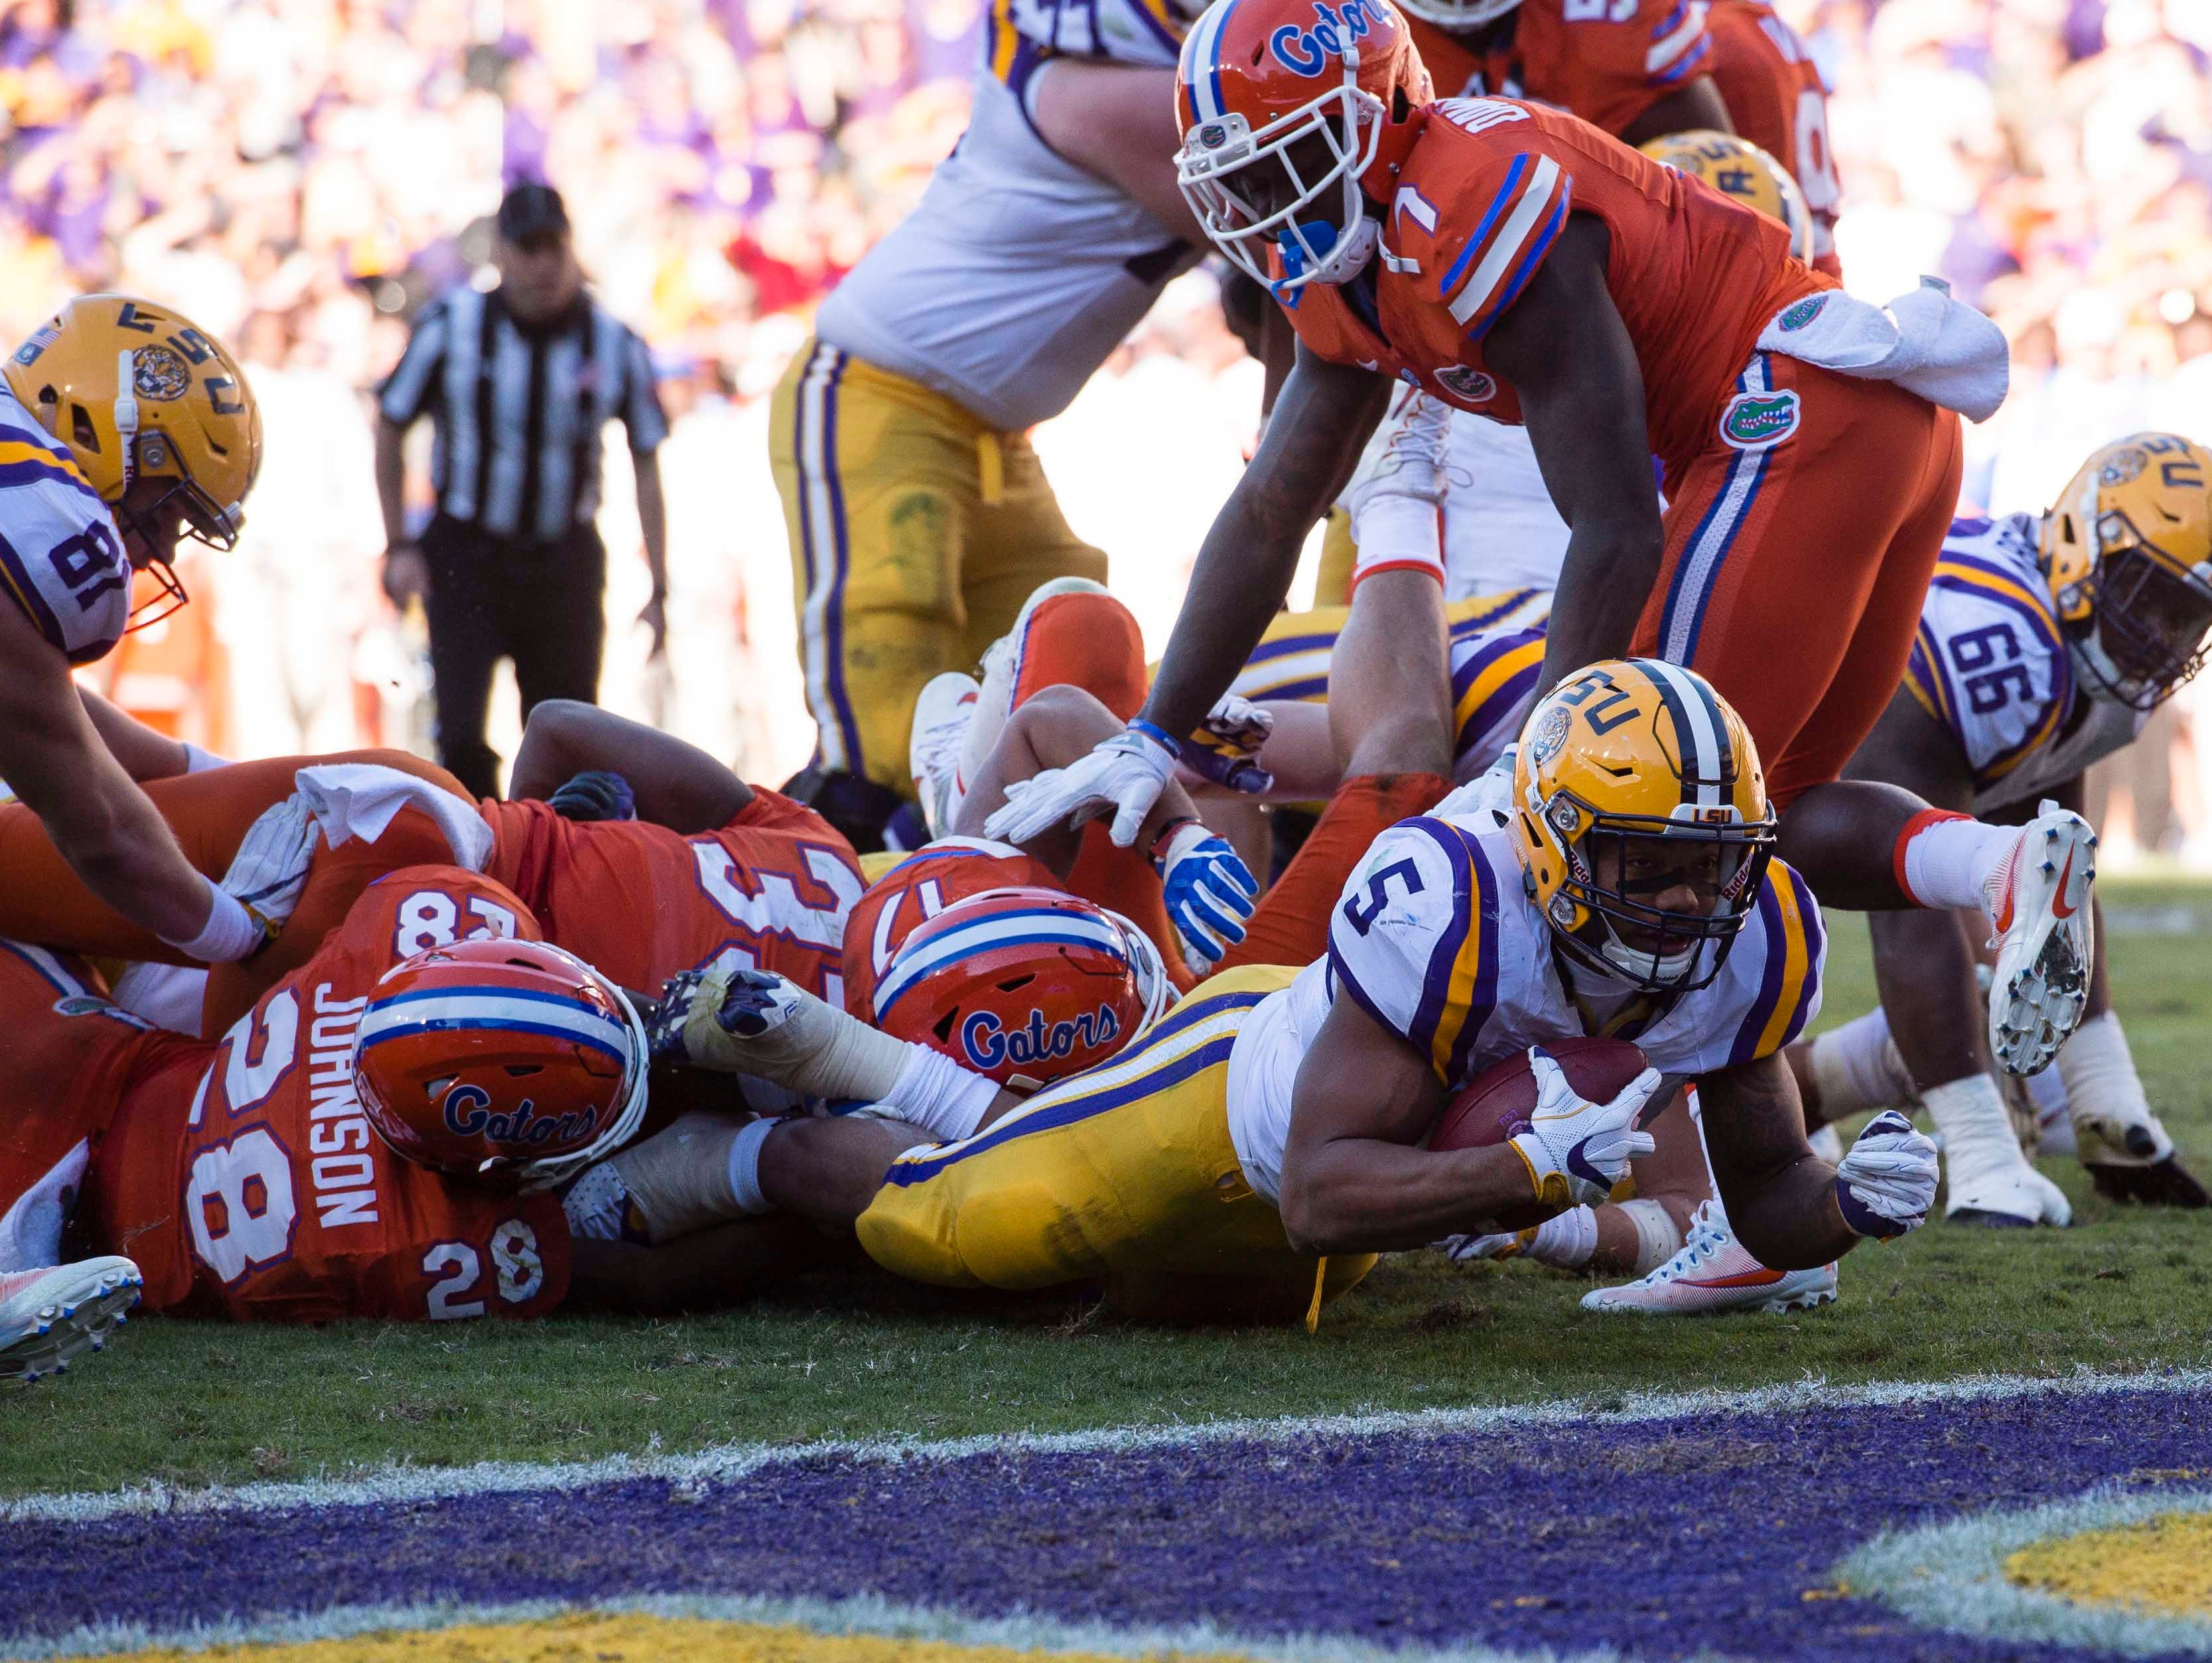 LSU Tigers running back Derrius Guice (5) is stopped short of the goal line on third down against the Florida Gators during the second half at Tiger Stadium. The Gators defeated the Tigers 16-10.